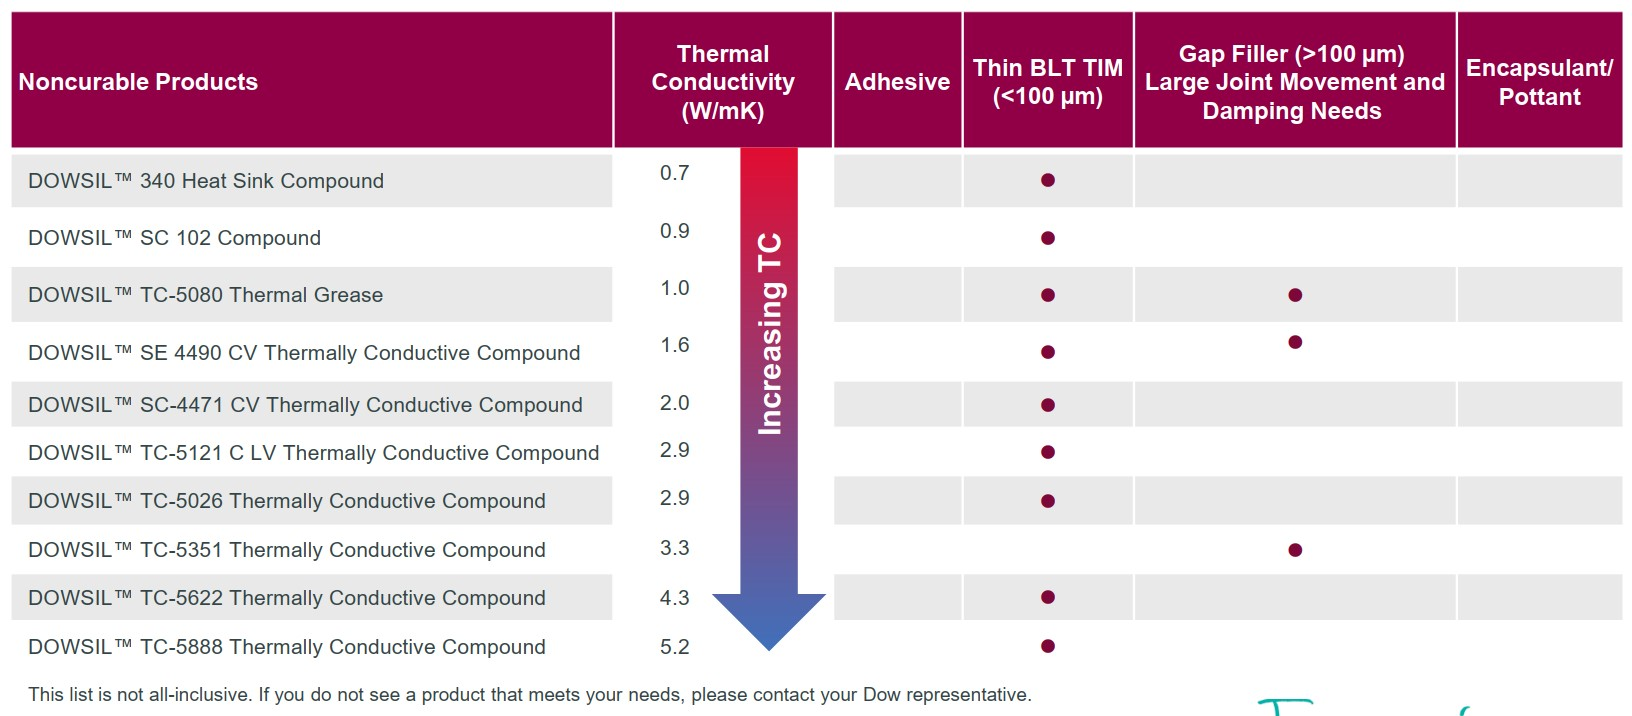 Thermally Conductive Materials Product Summary